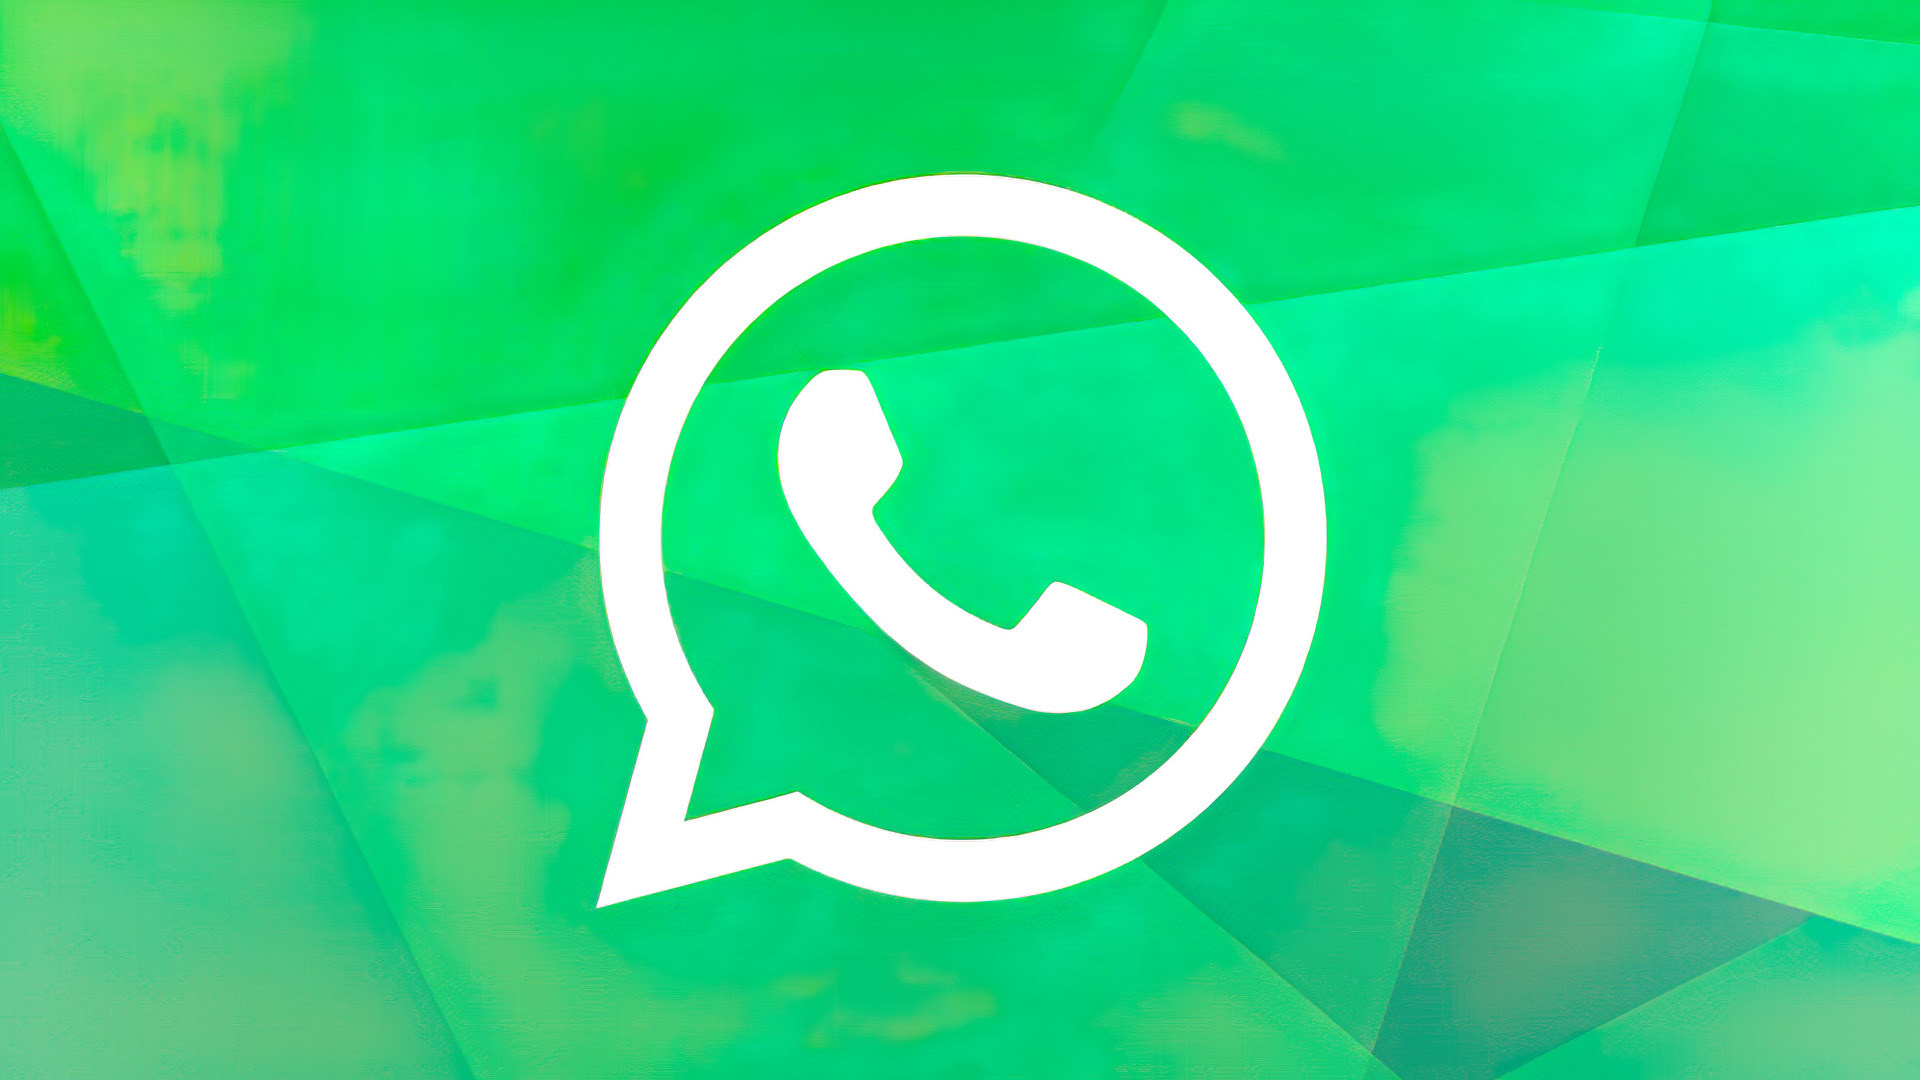 Logo, Messenger, Chat, whatsapp, Whatsapp Beta, WhatsApp Web, WhatsApp Messenger, Whatsapp-Button, WhatsApp Logo